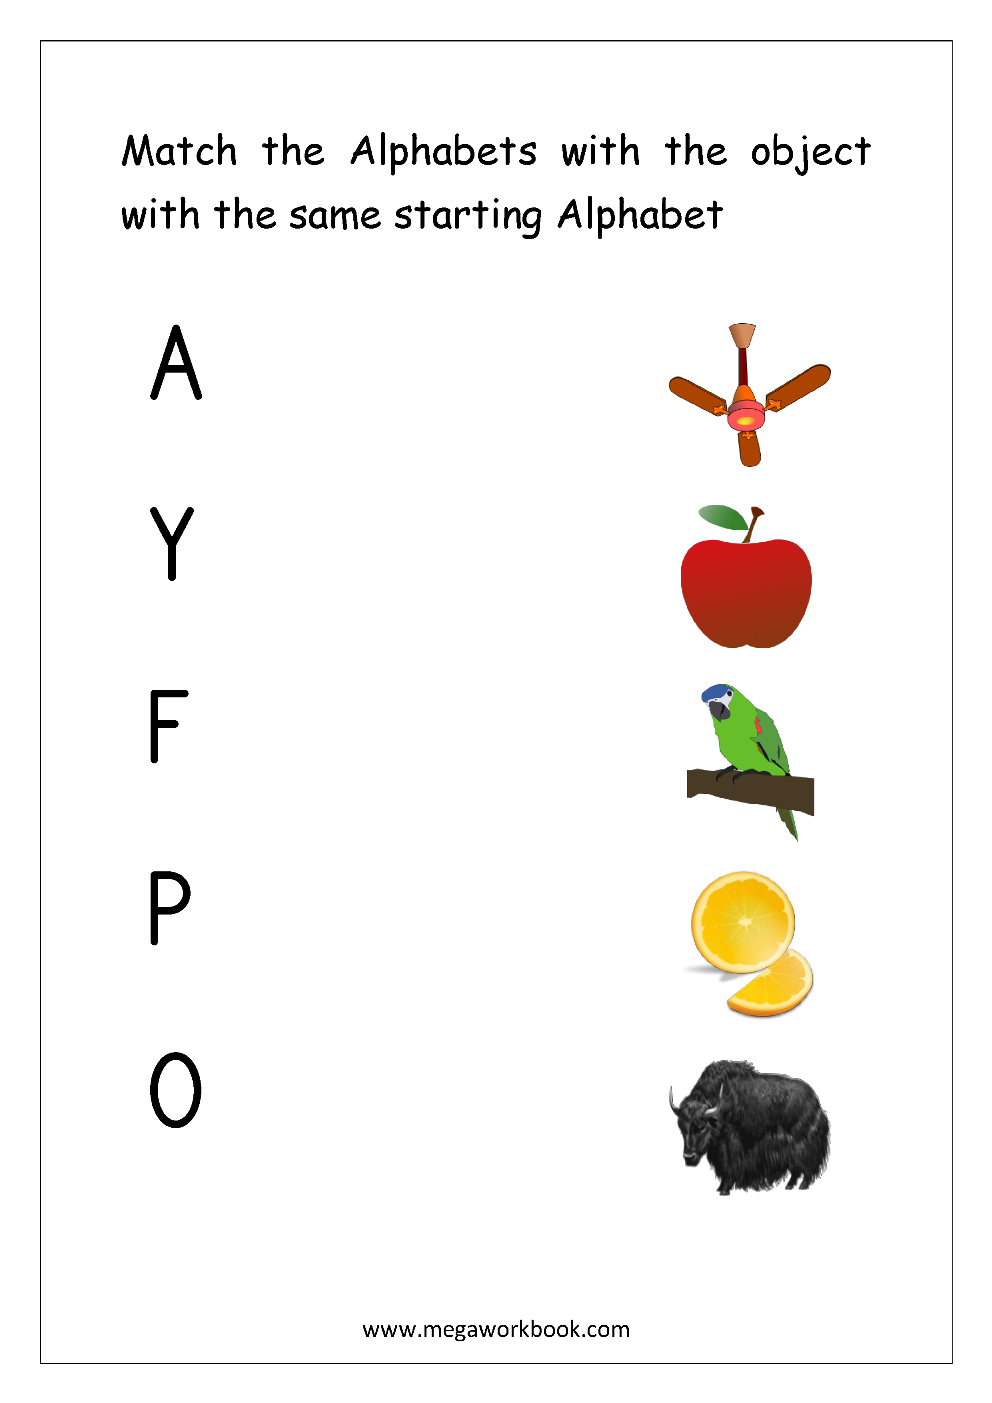 Free English Worksheets - Alphabet Matching - Megaworkbook for Alphabet Matching Worksheets For Kindergarten Pdf